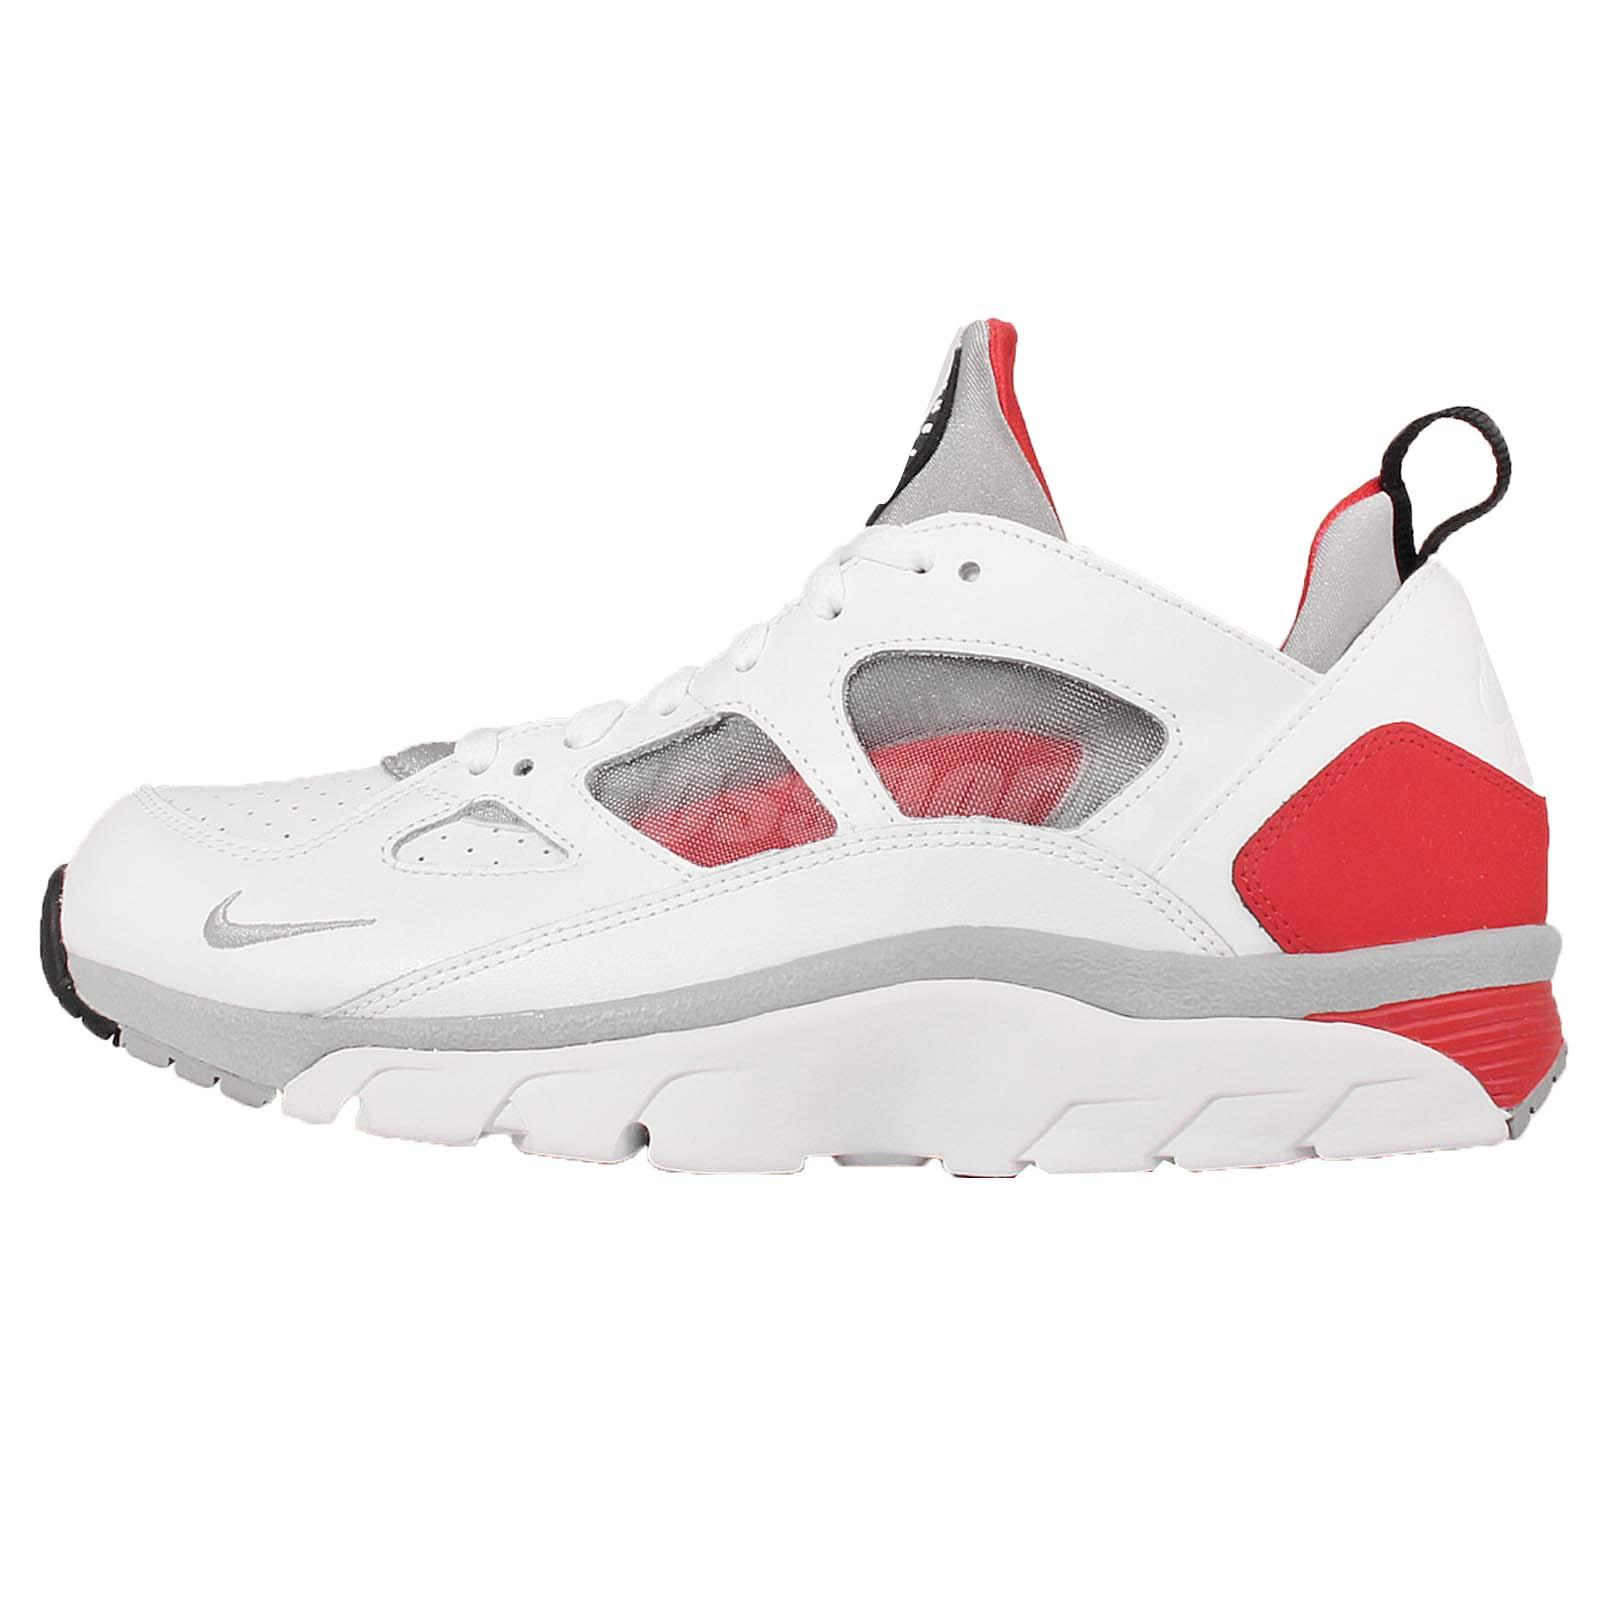 dc5daaa95184 ... real nike air trainer huarache low white grey red men cross training shoes  749447 102 c4ffb